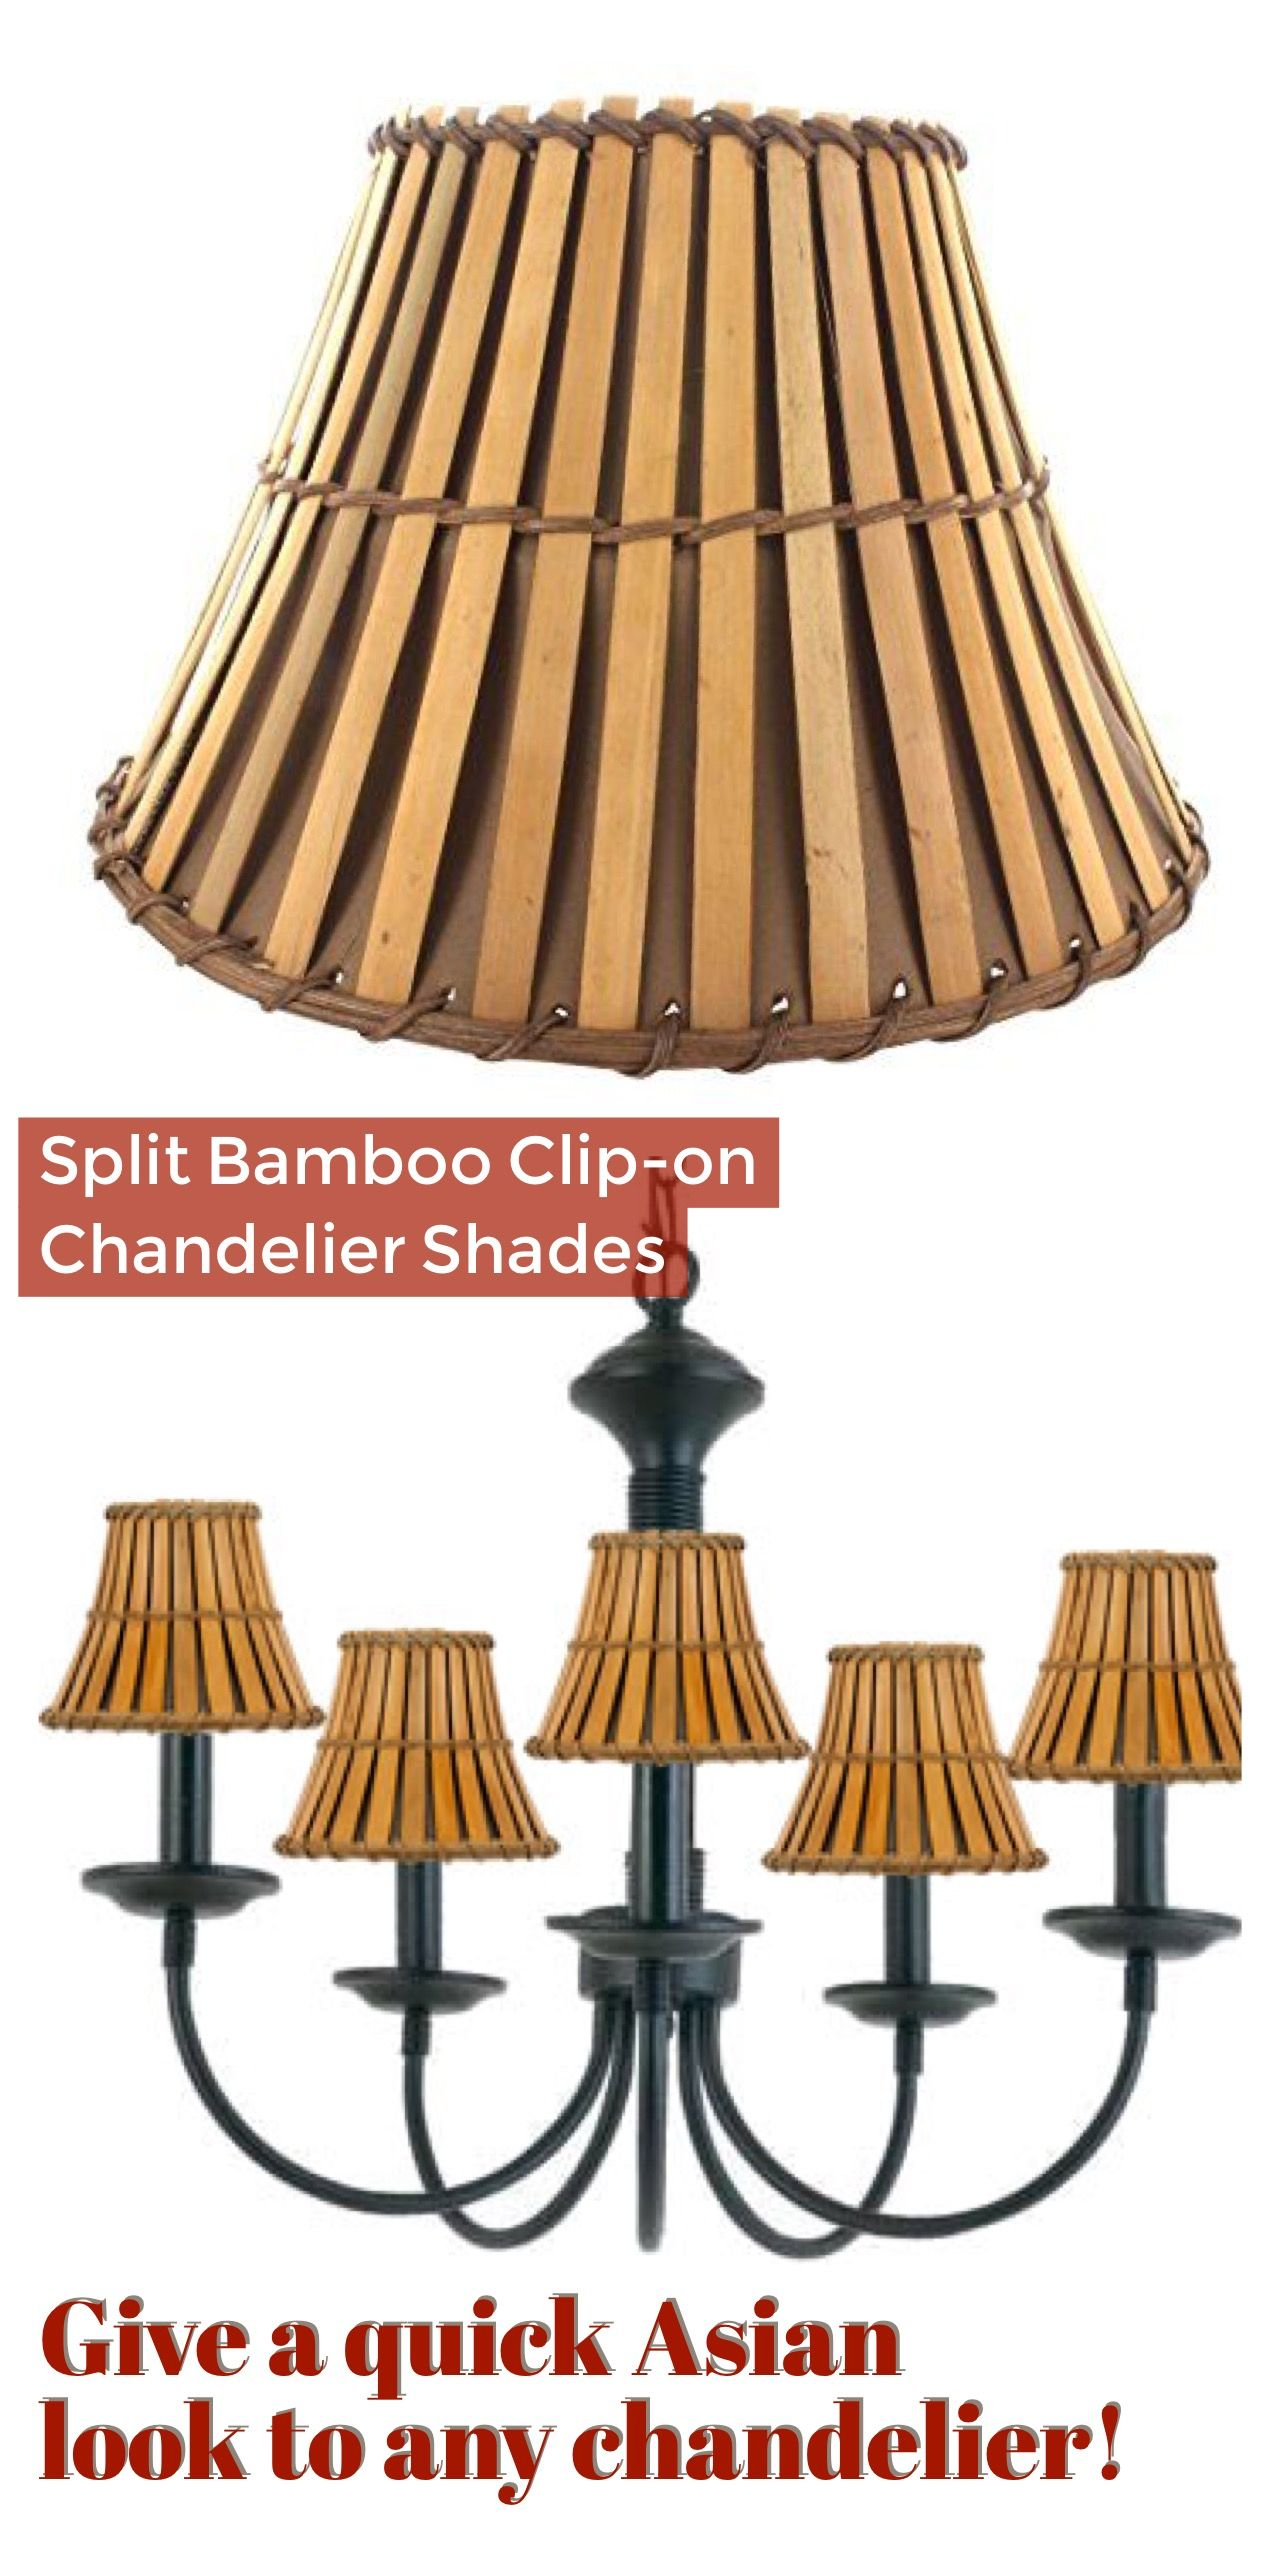 Give A Quick Asian Look To Any Chandelier With Split Bamboo Clip On Shades